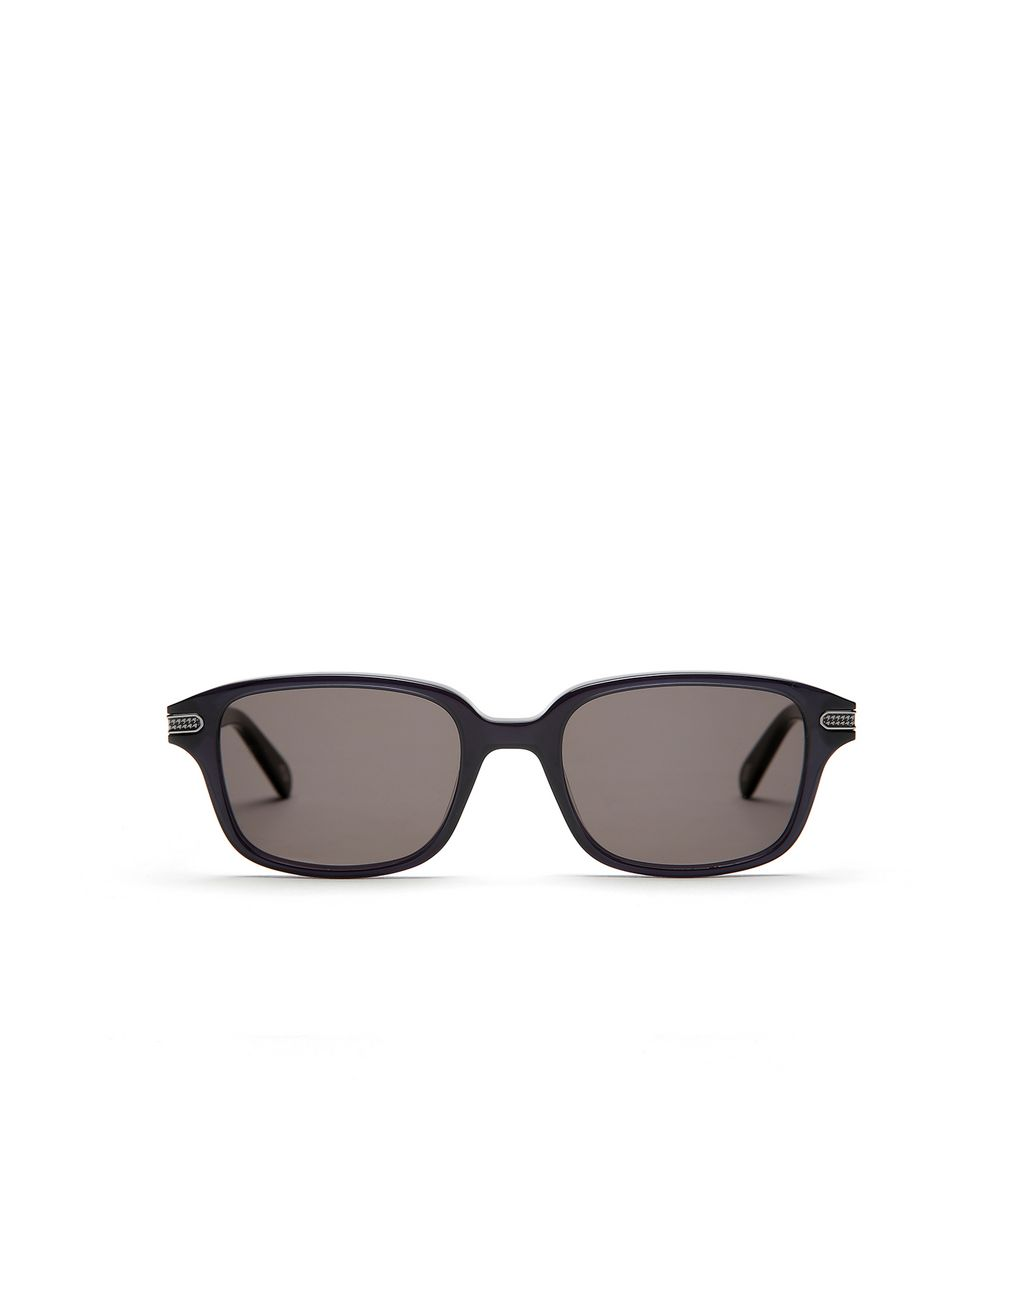 BRIONI Navy Blue Squared Sunglasses with Grey Lenses  Sunglasses [*** pickupInStoreShippingNotGuaranteed_info ***] f